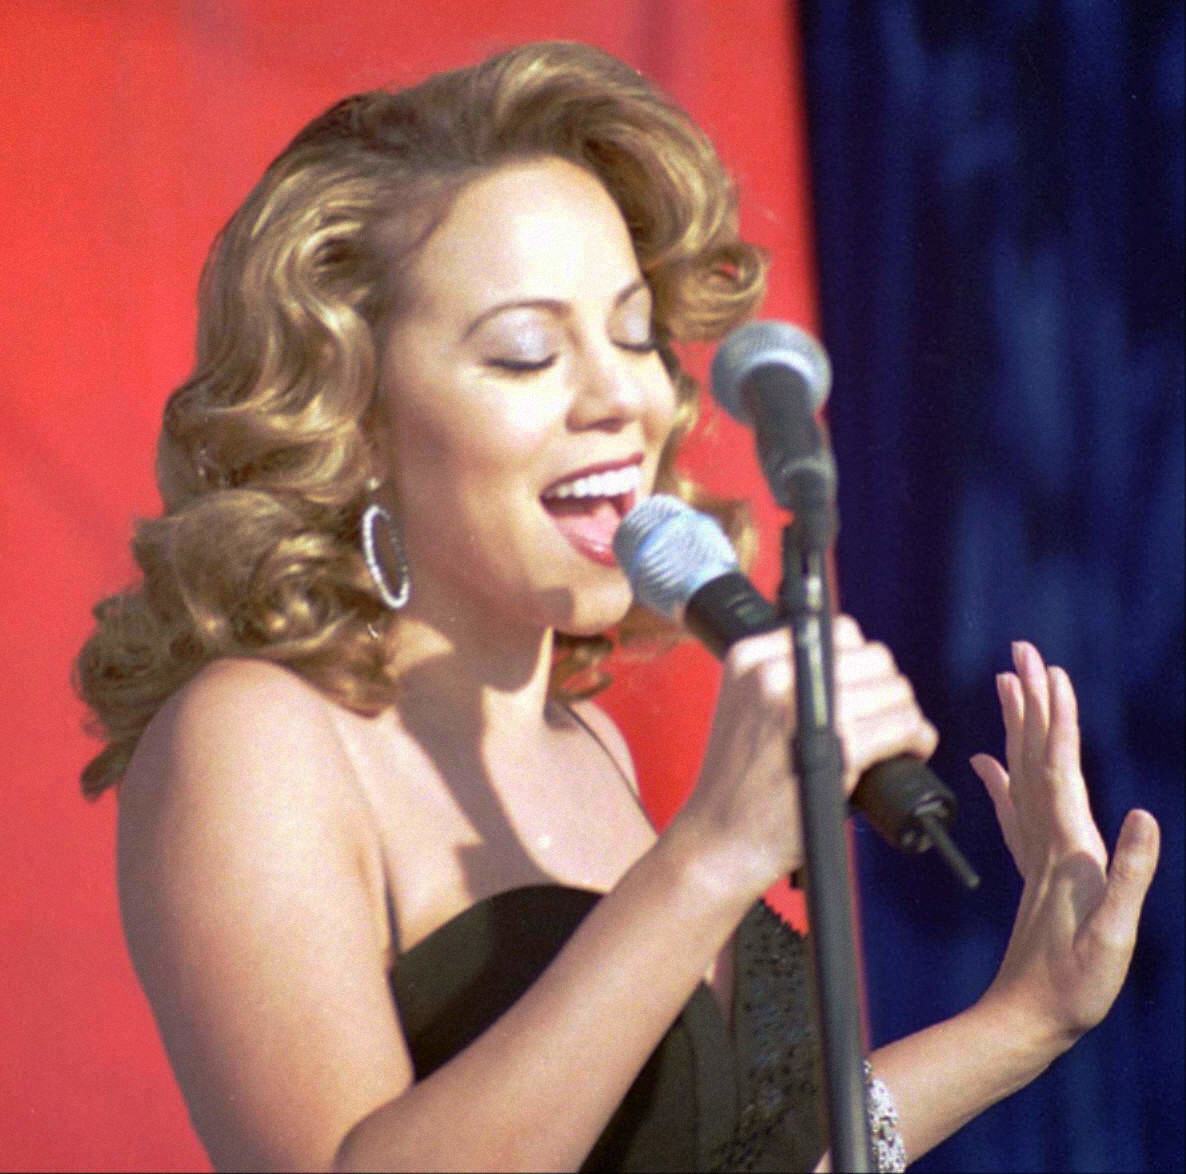 Mariah Carey's 18th single to beat Presley's